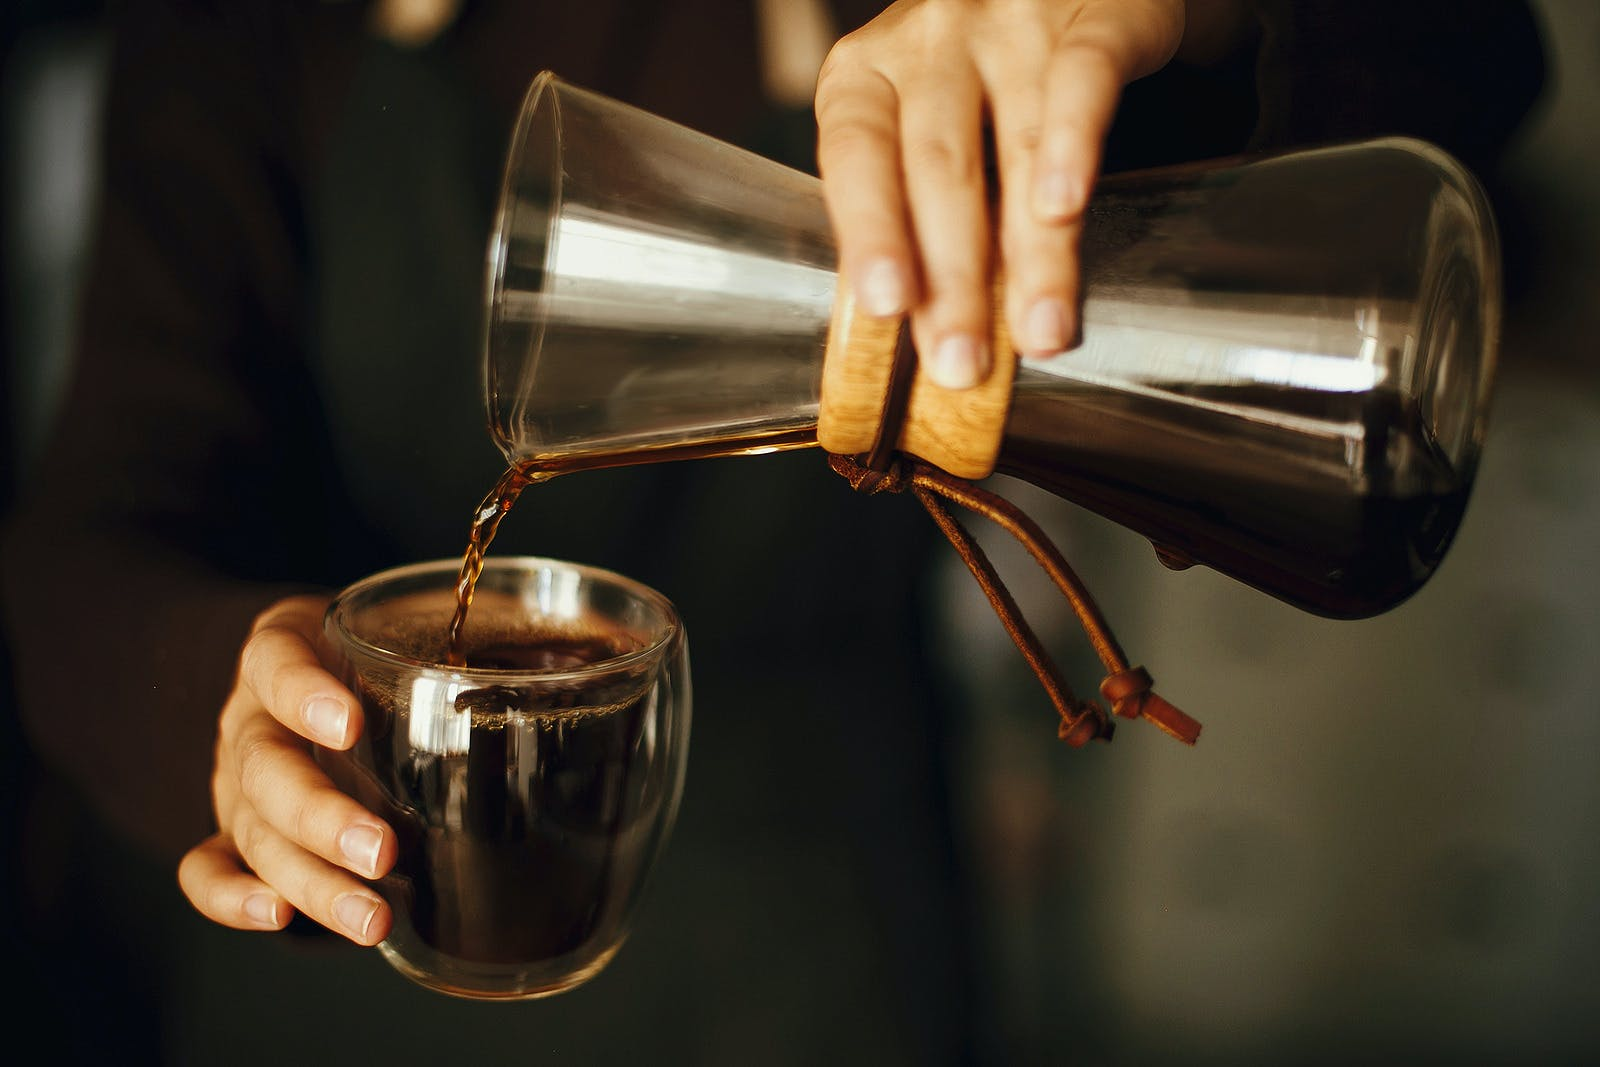 Professional female barista in black uniform making drip coffee. Person pouring fresh aromatic coffee from glass kettle in cup.  Alternative coffee brewing,